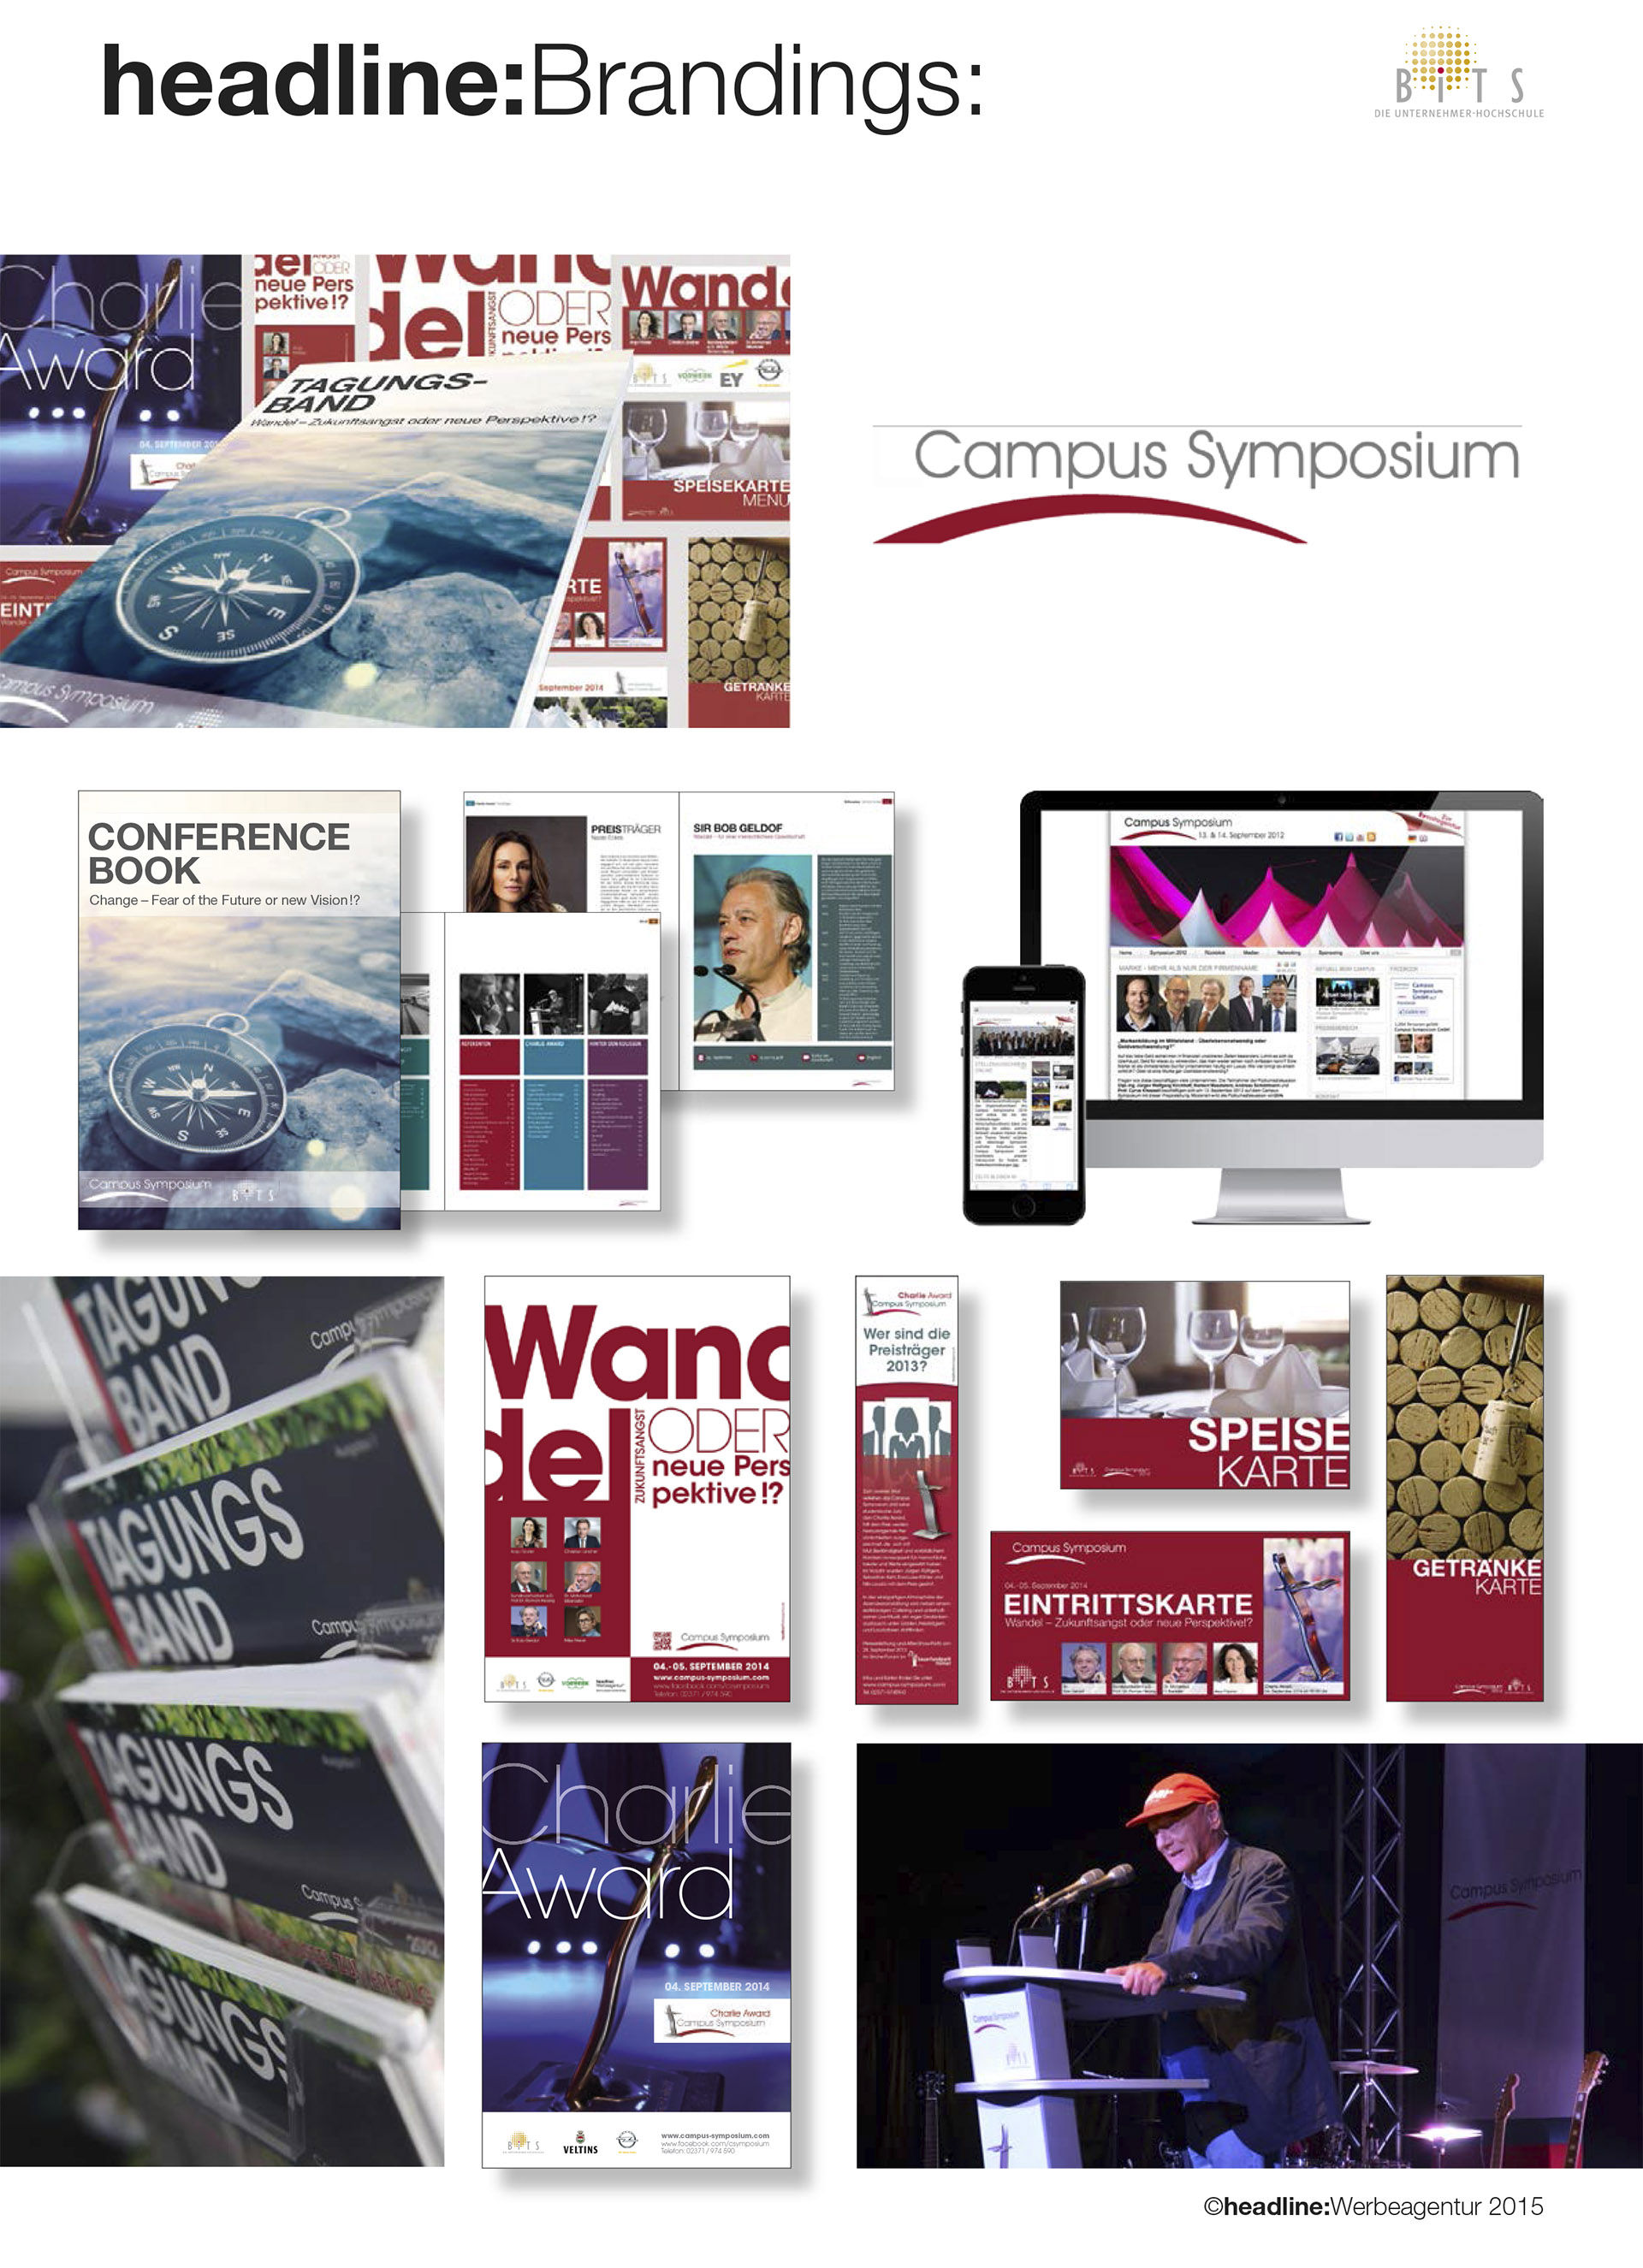 Das Campus Symposium Branding by headline